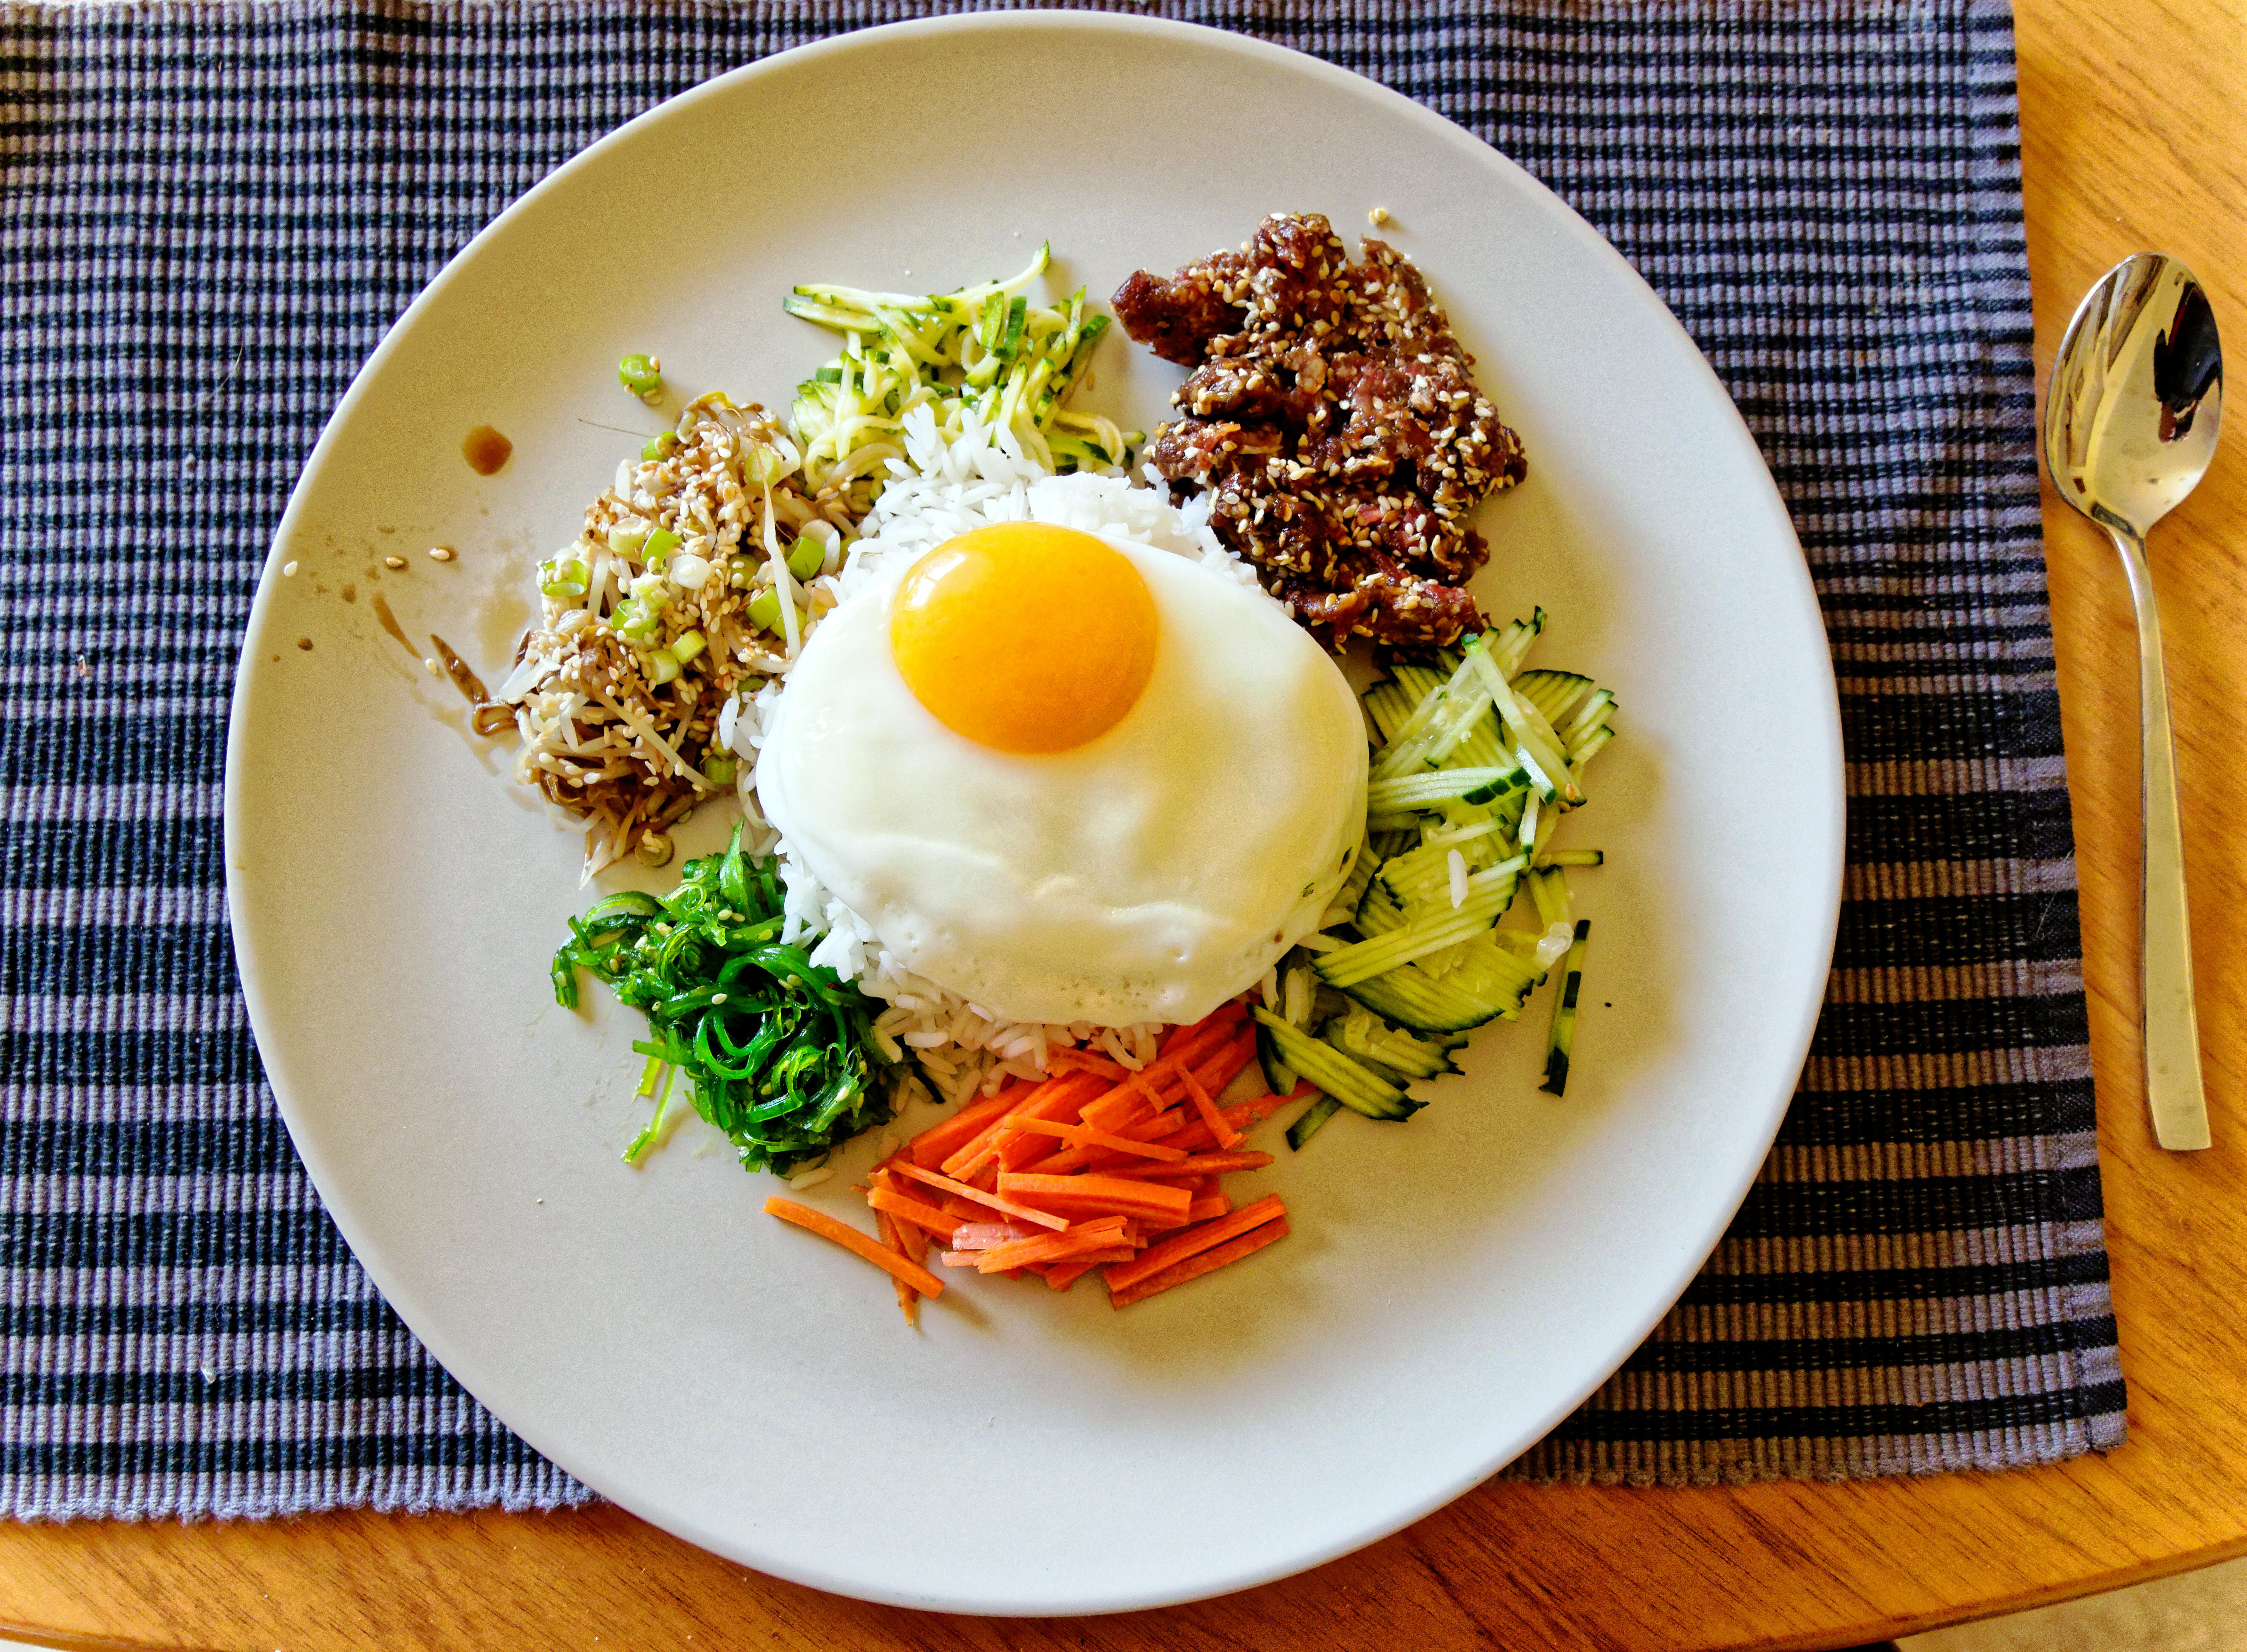 This should be Bibimbap-1.jpeg.  Is it missing?